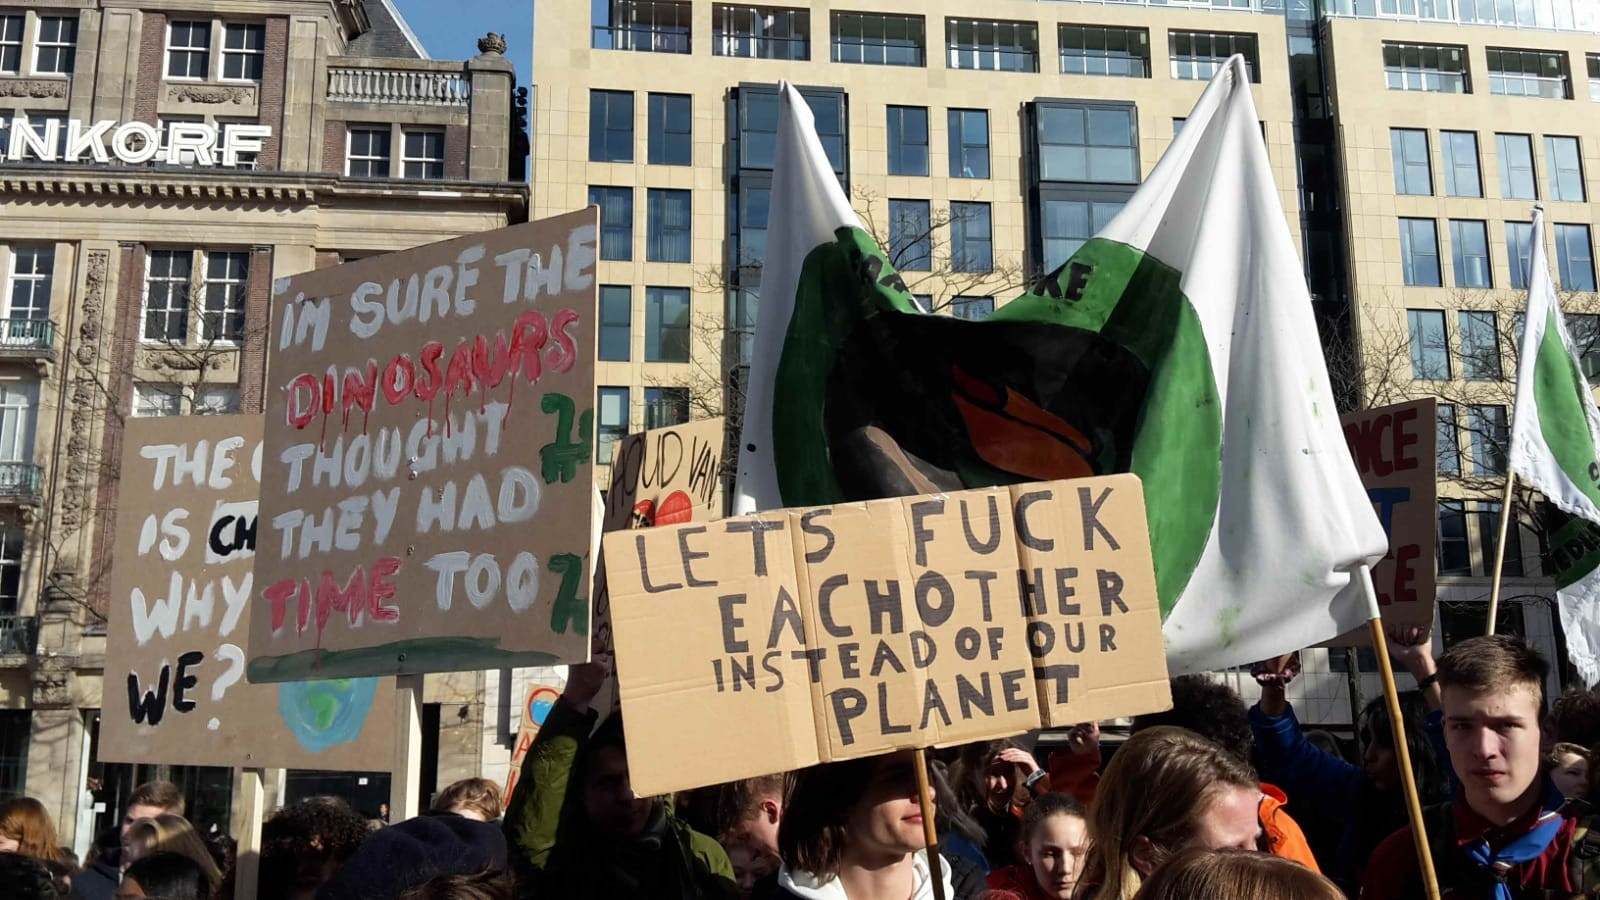 Amsterdam pro-climate demonstrators today